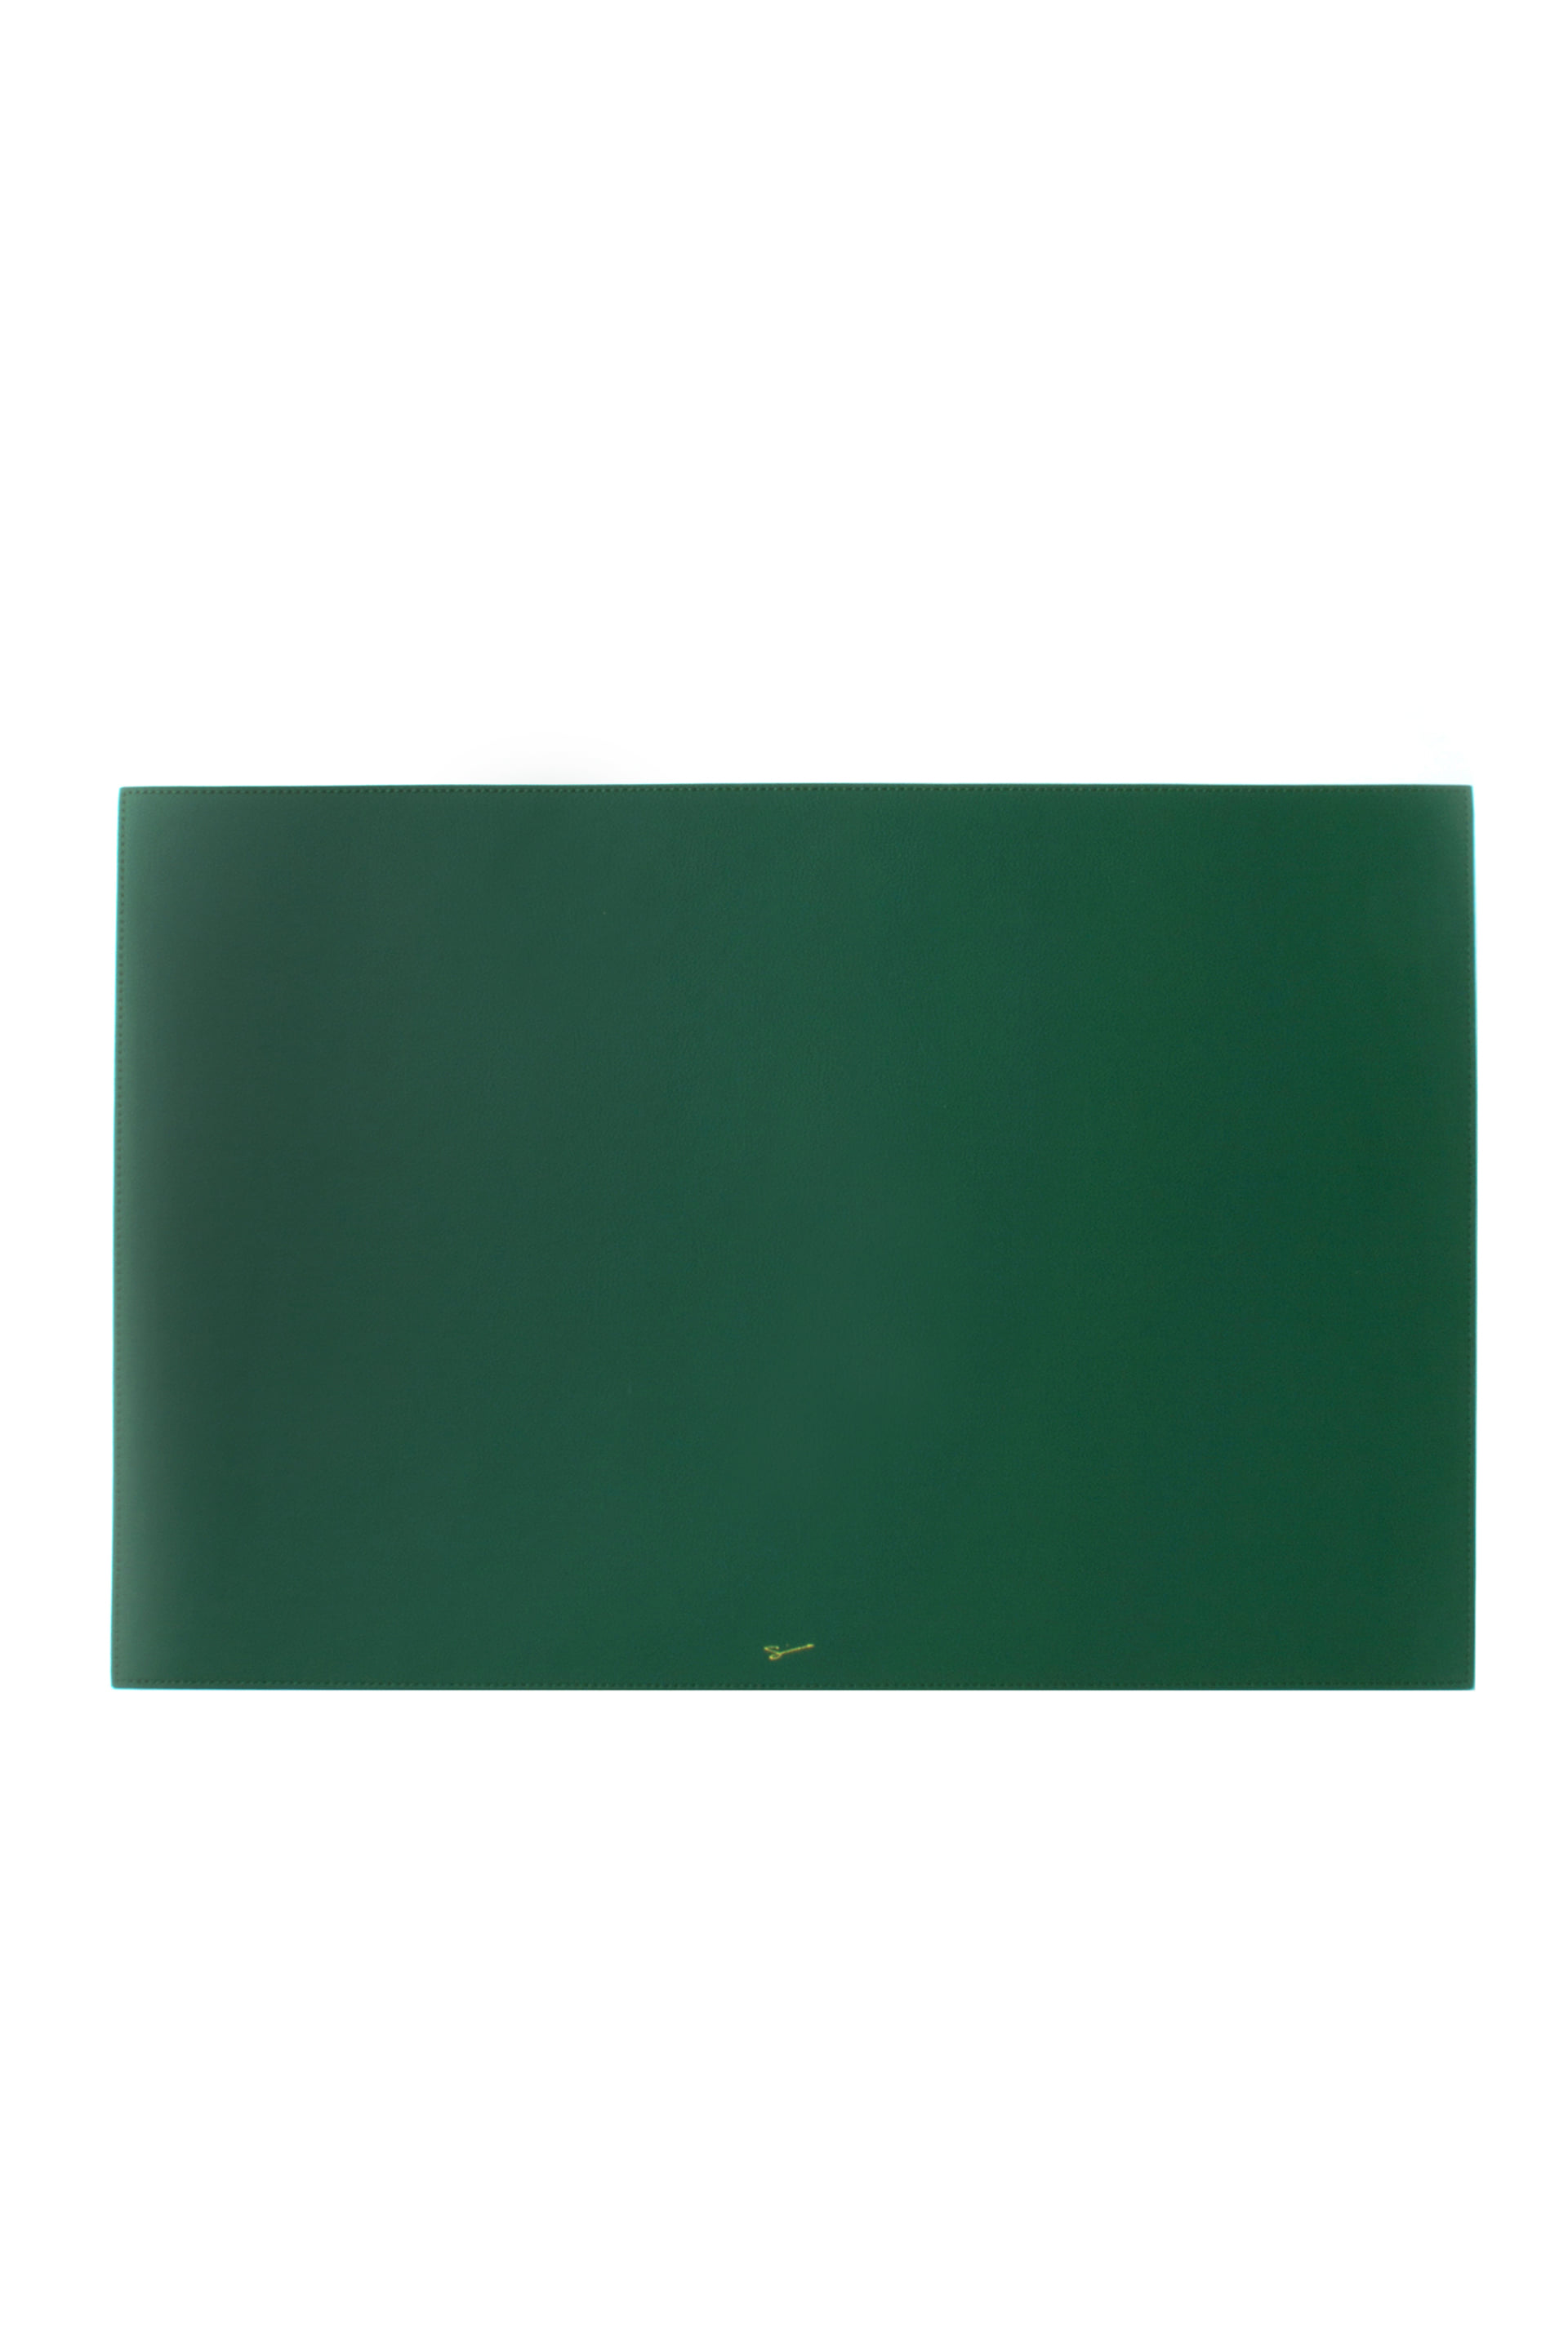 DESK PAD 12 Deep Green